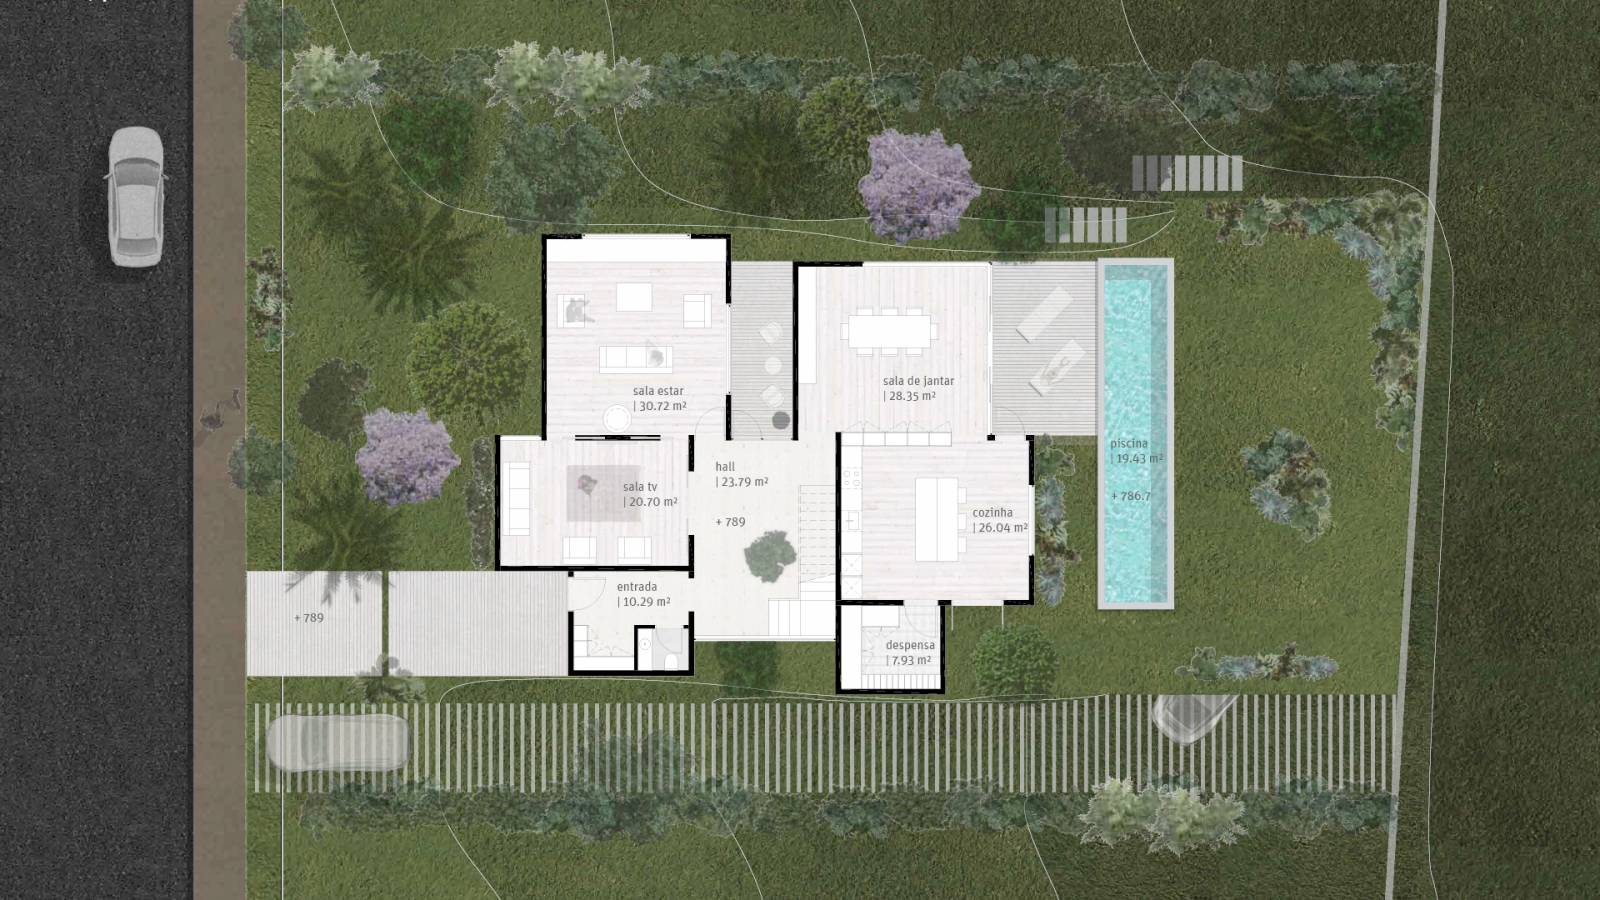 HOUSE #3 - LEVEL 2 PLAN - 6 case study houses - SPOL Architects